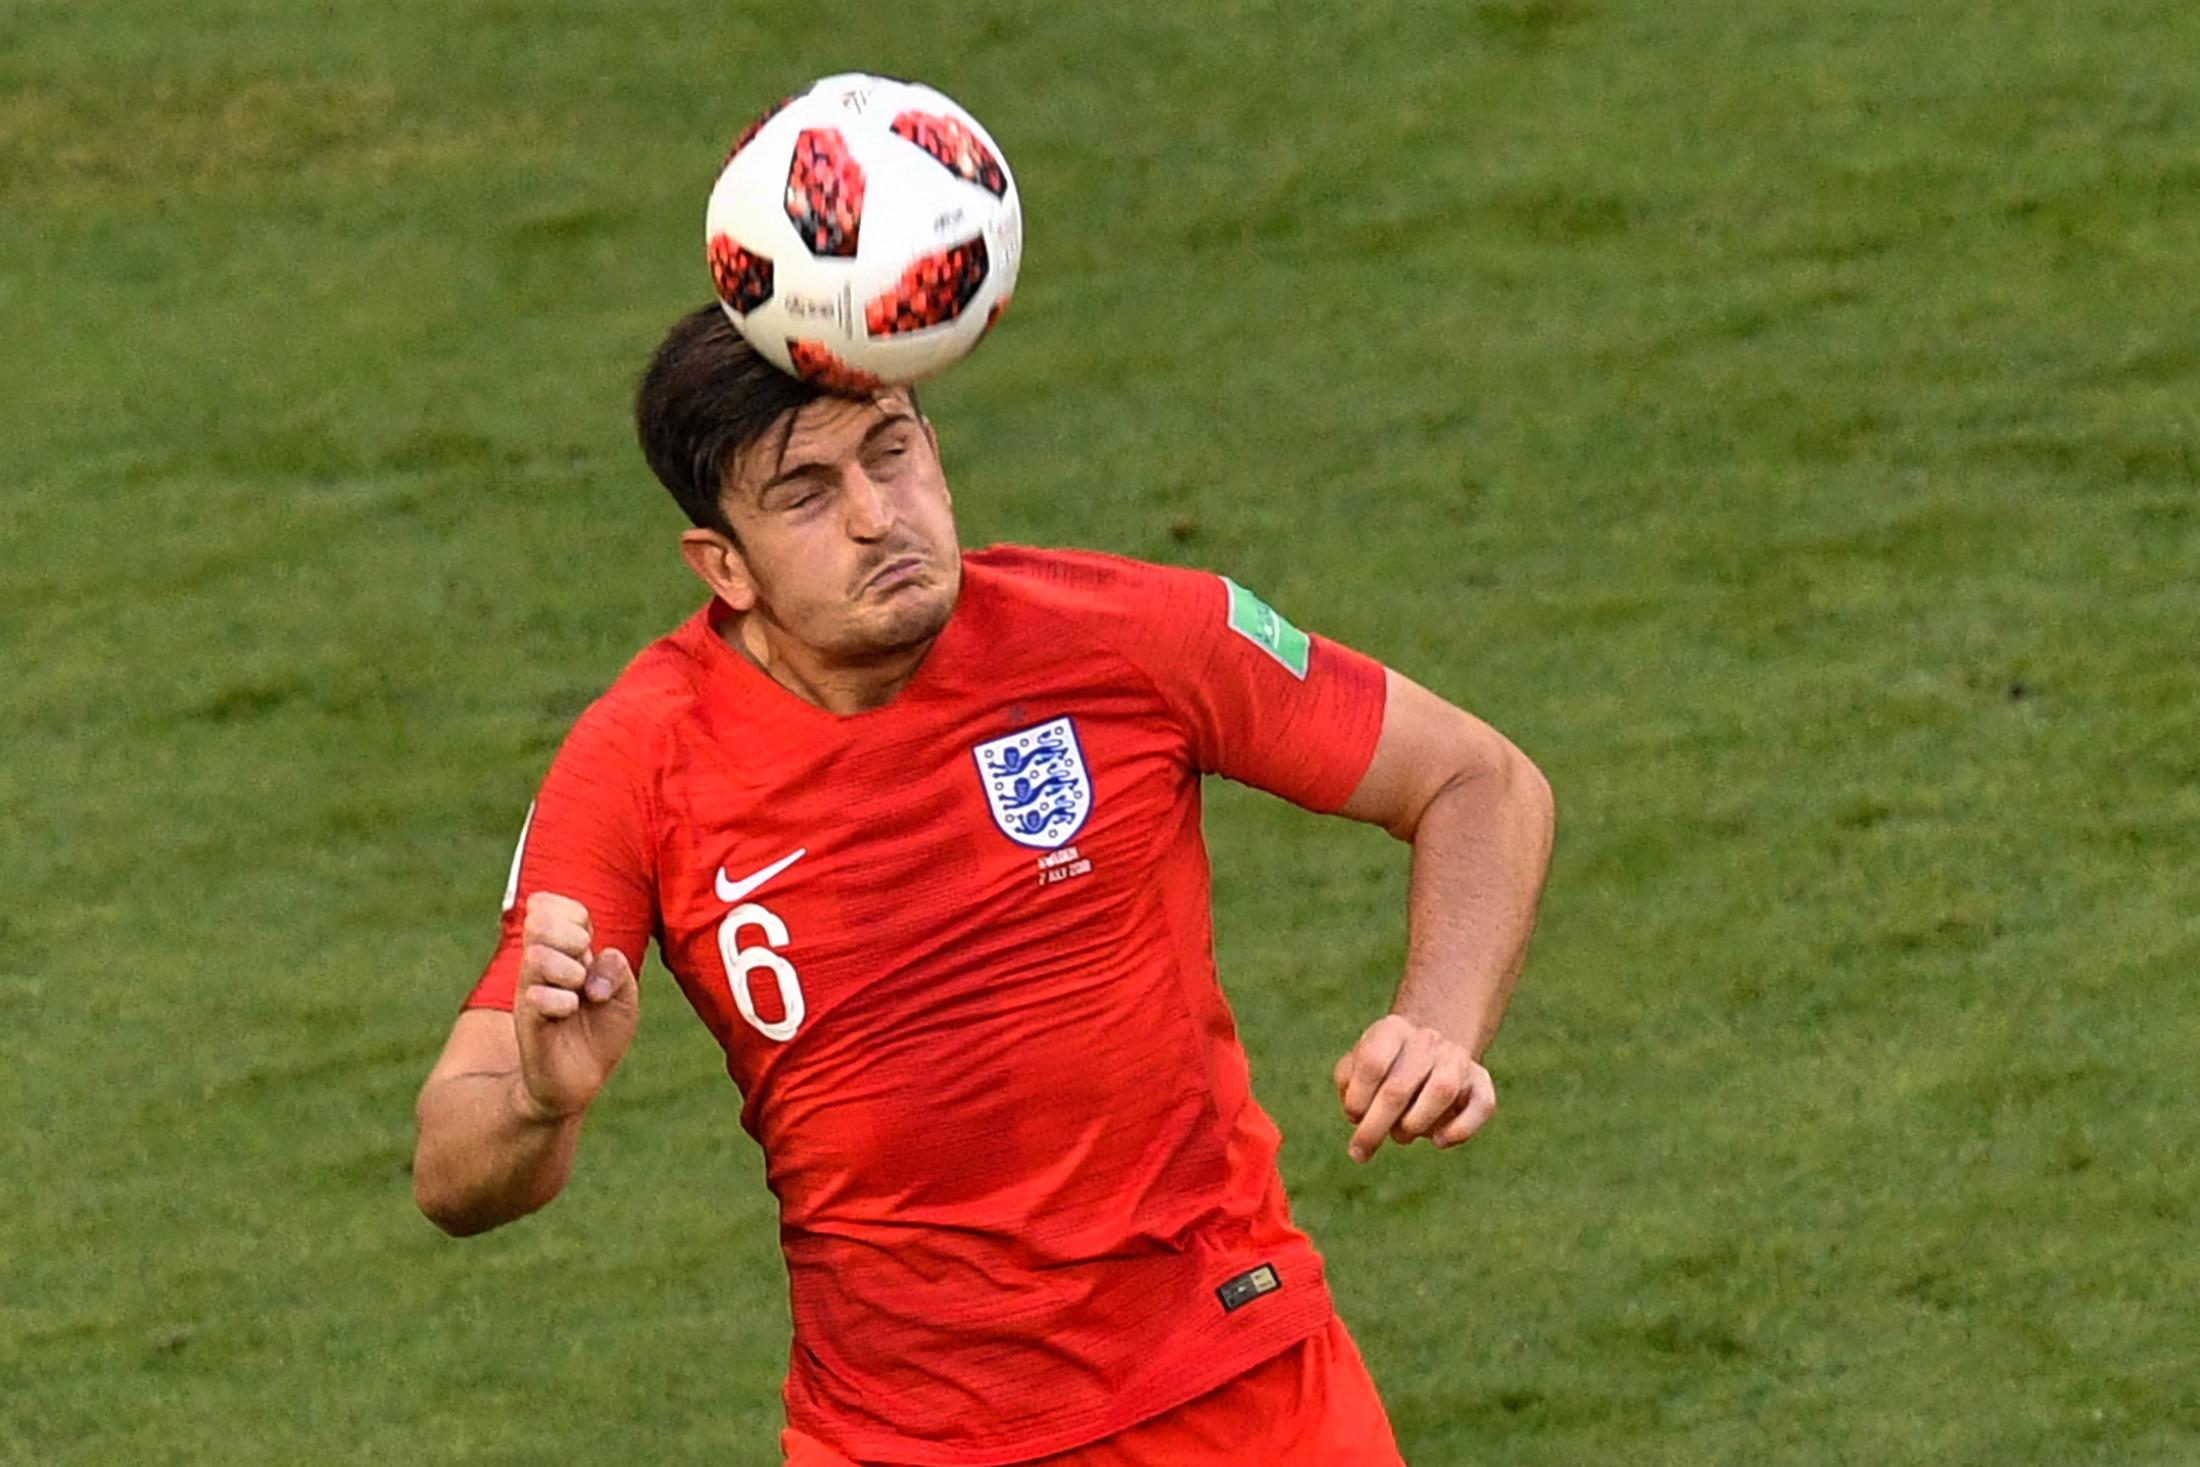 England's Harry Maguire heads the ball